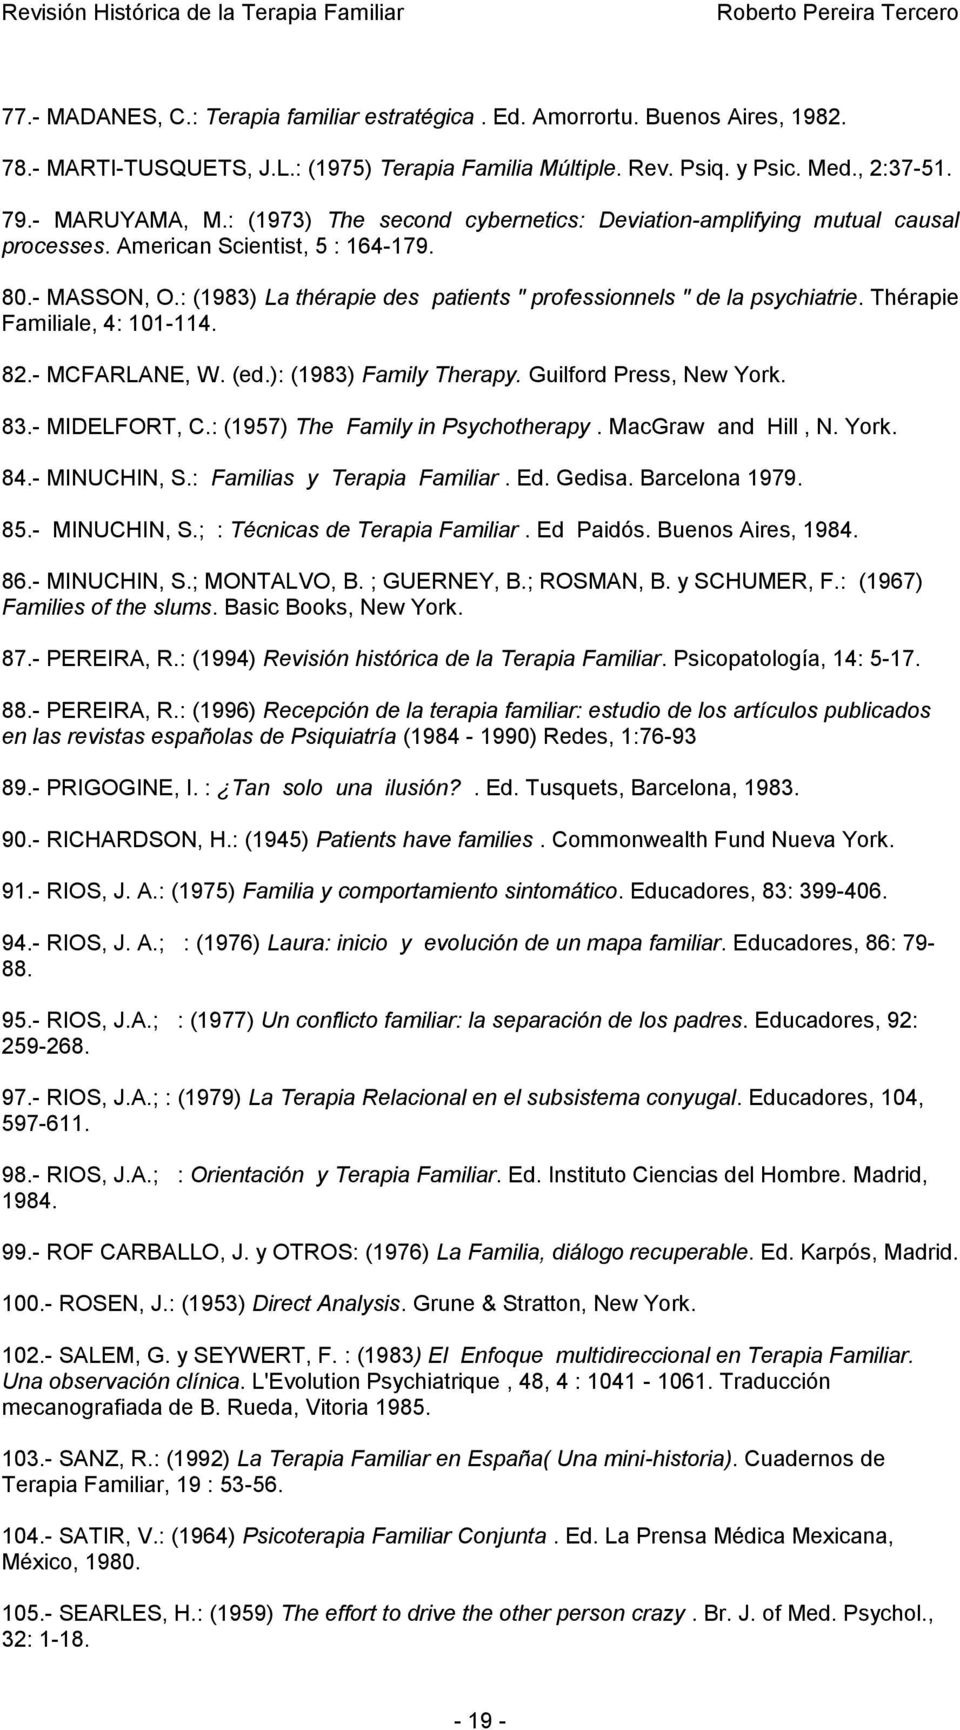 Thérapie Familiale, 4: 101-114. 82.- MCFARLANE, W. (ed.): (1983) Family Therapy. Guilford Press, New York. 83.- MIDELFORT, C.: (1957) The Family in Psychotherapy. MacGraw and Hill, N. York. 84.